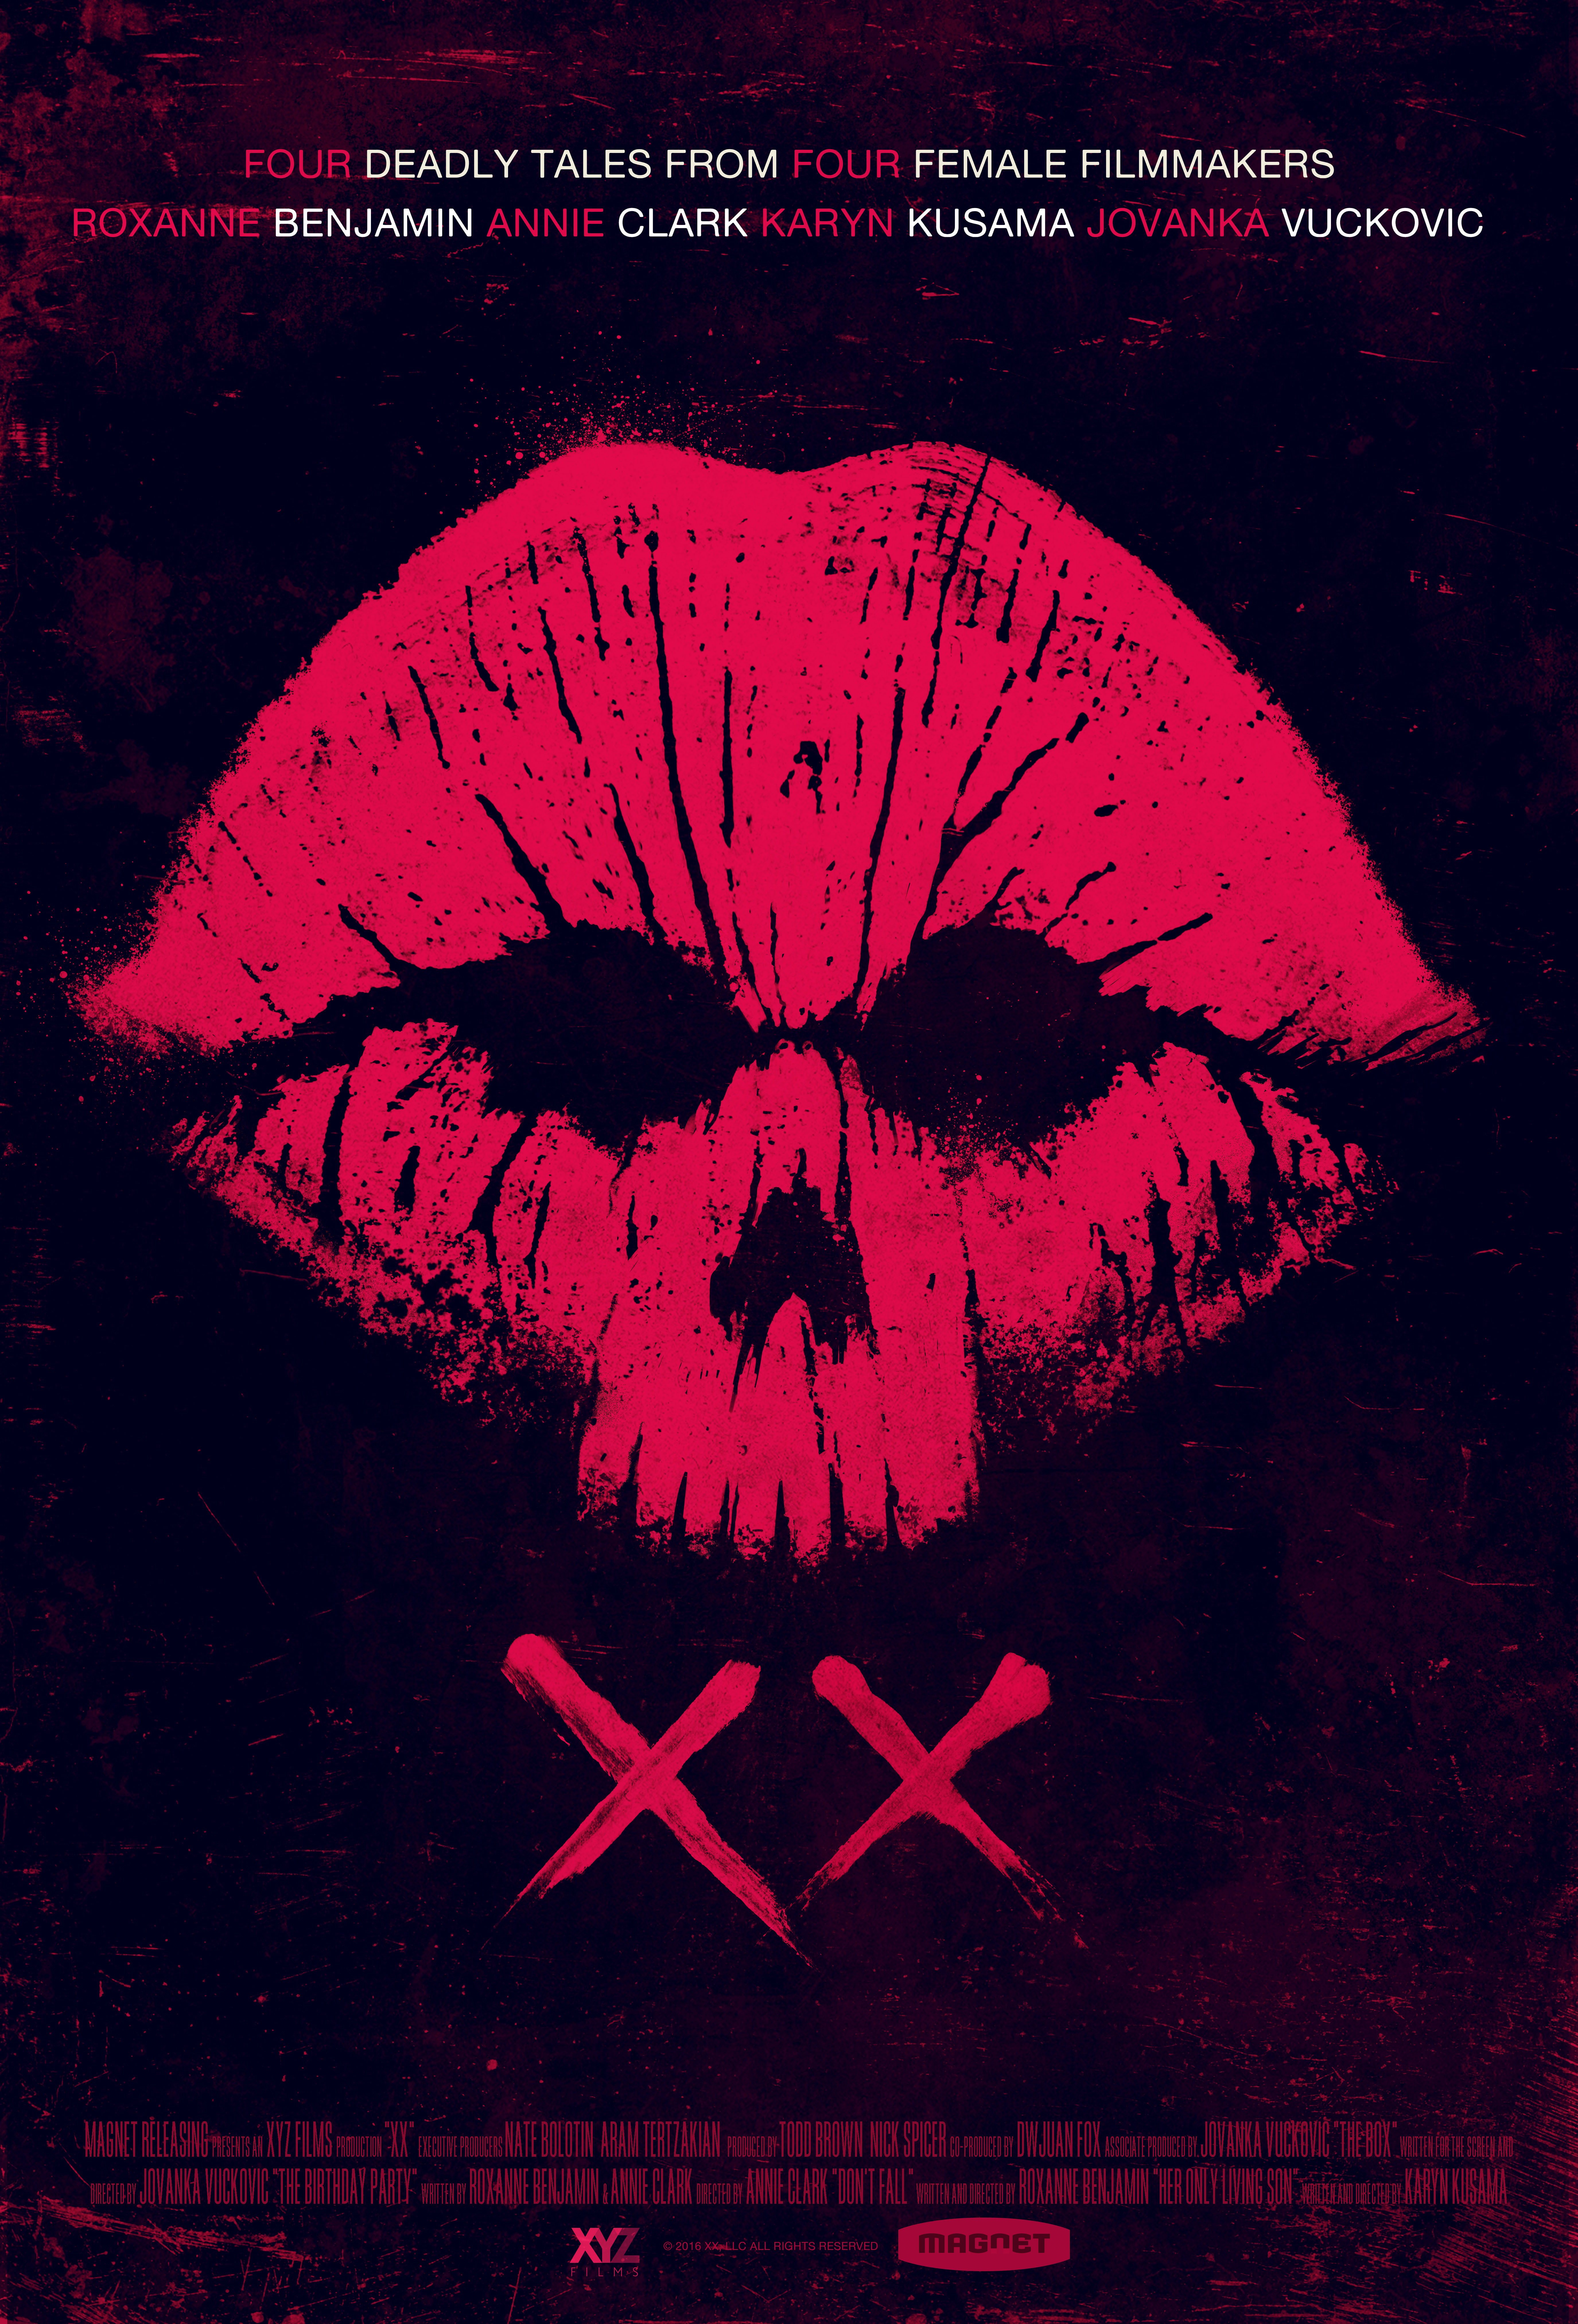 XX (Official Movie Site) - Own it on DVD, Blu-ray™ or Digital HD